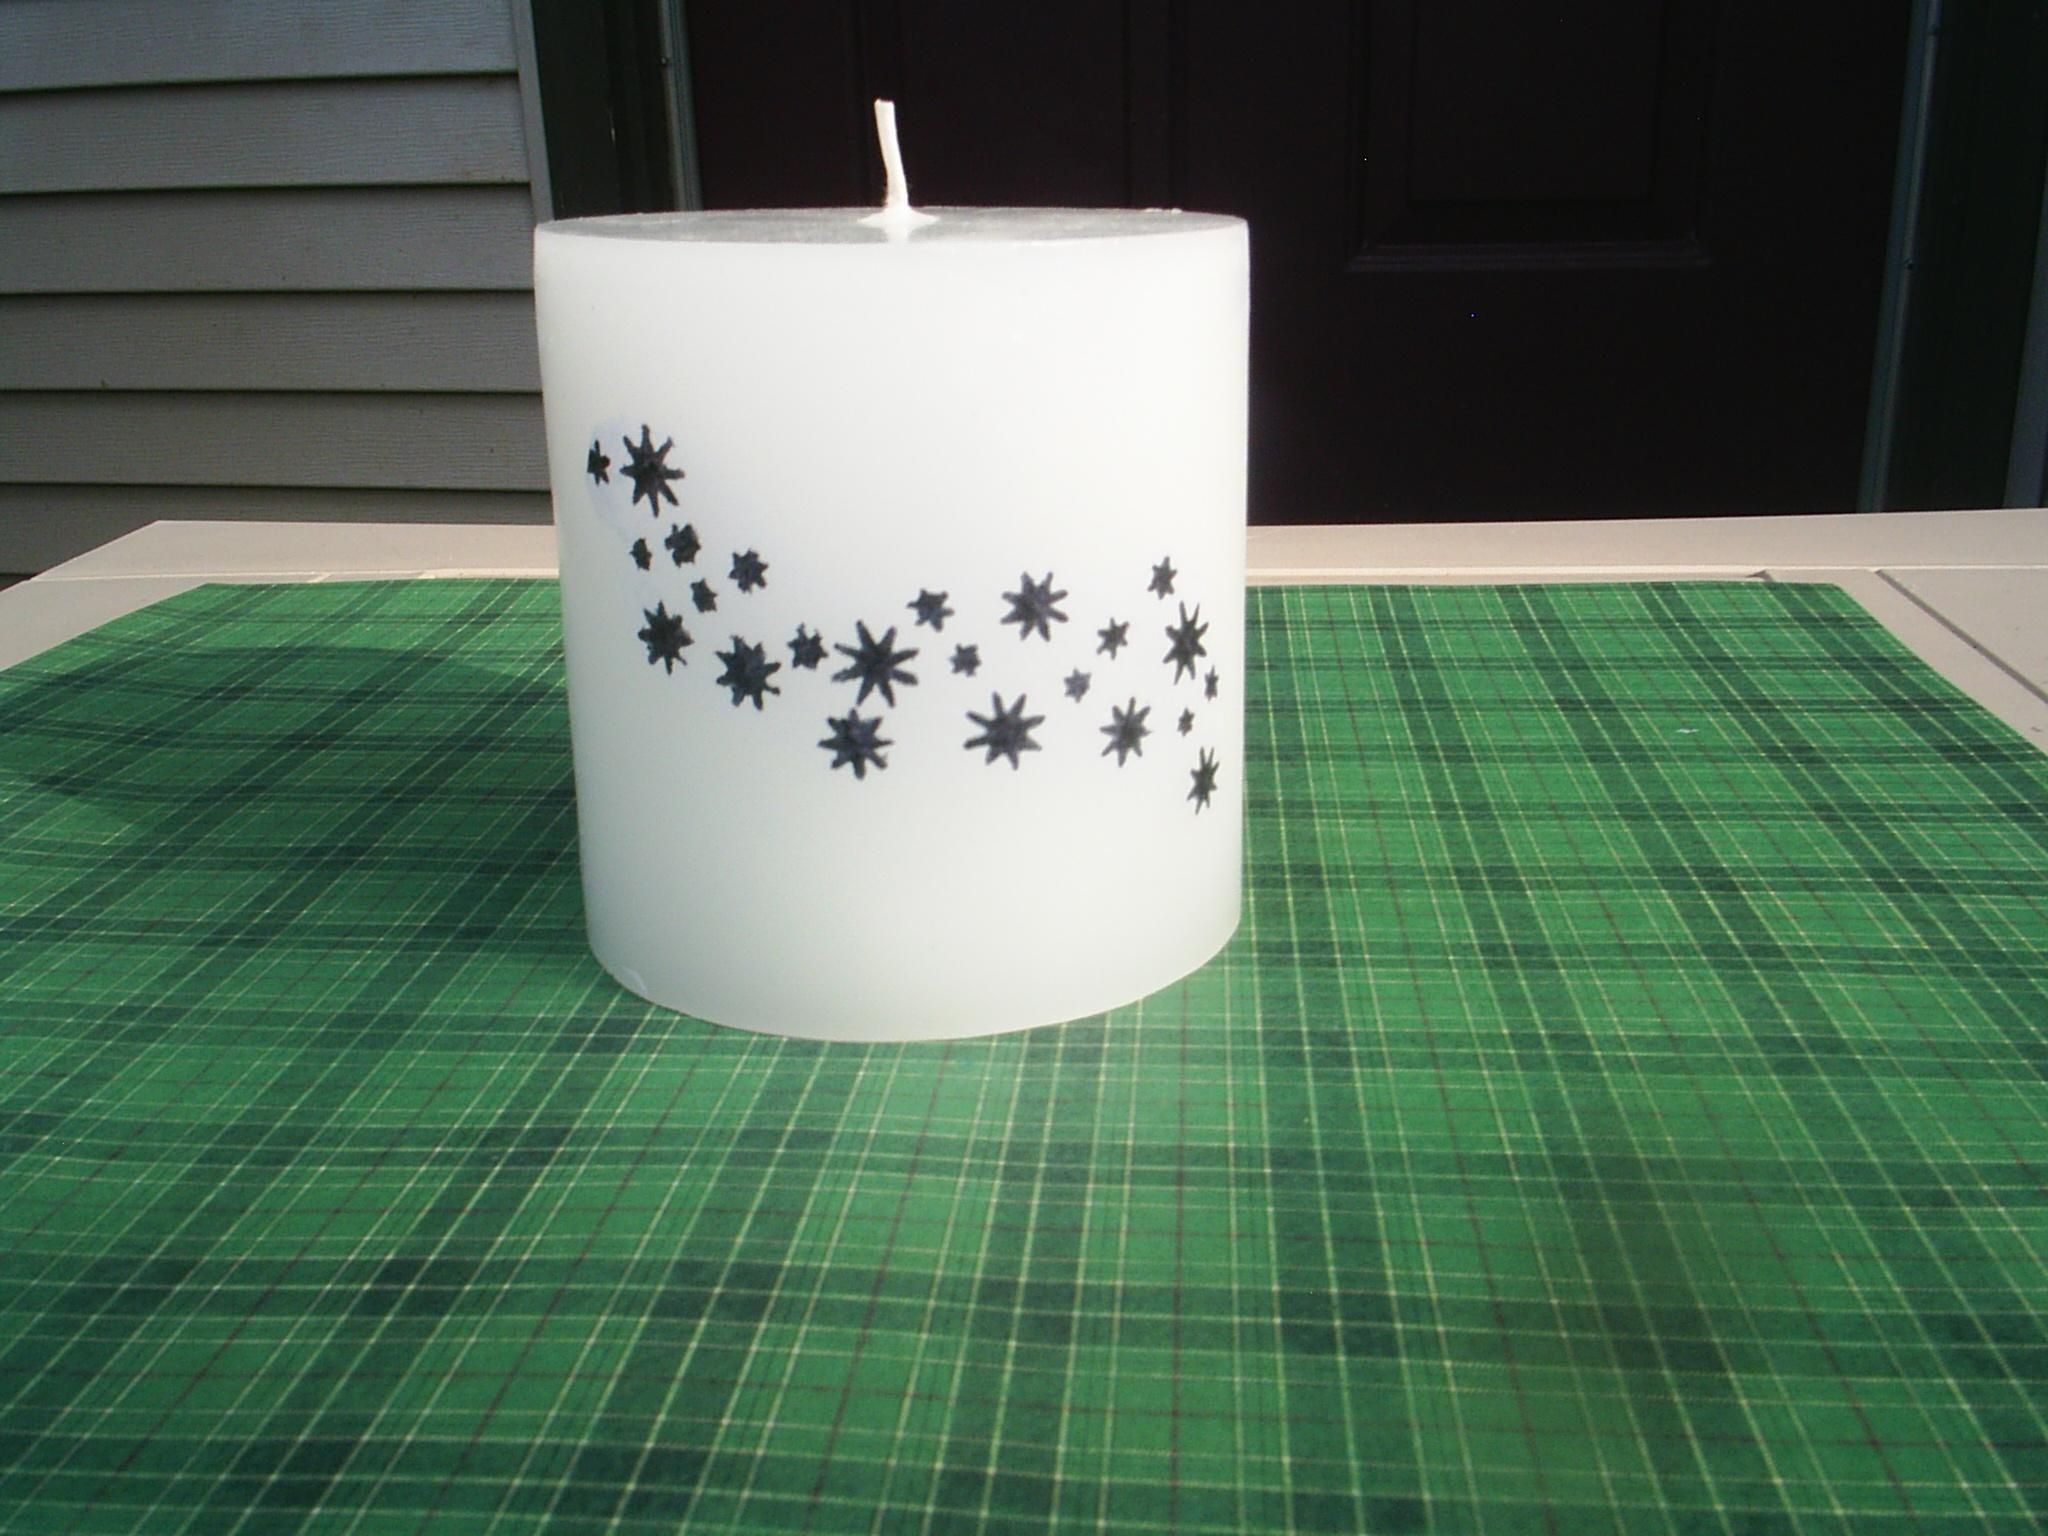 Tutorial: Transfer a Picture To A Candle